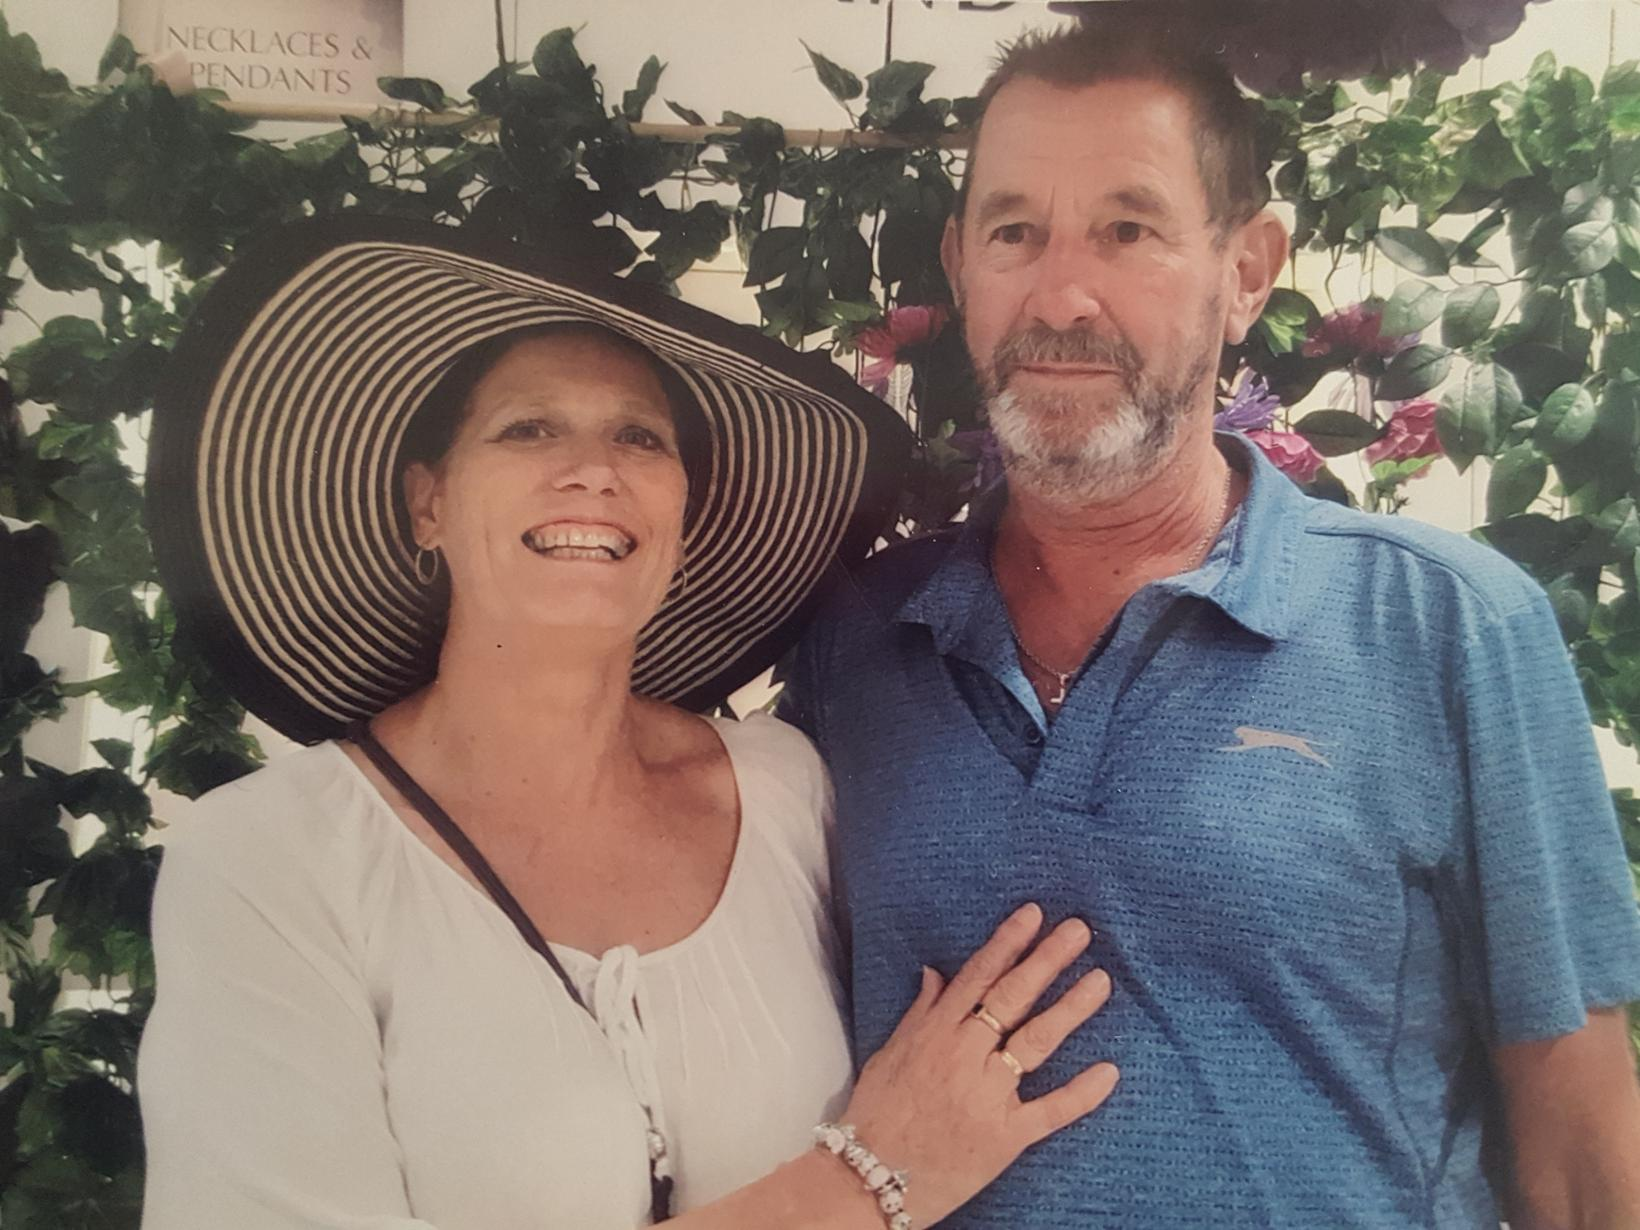 Jennifer & Darryl from Albury, New South Wales, Australia